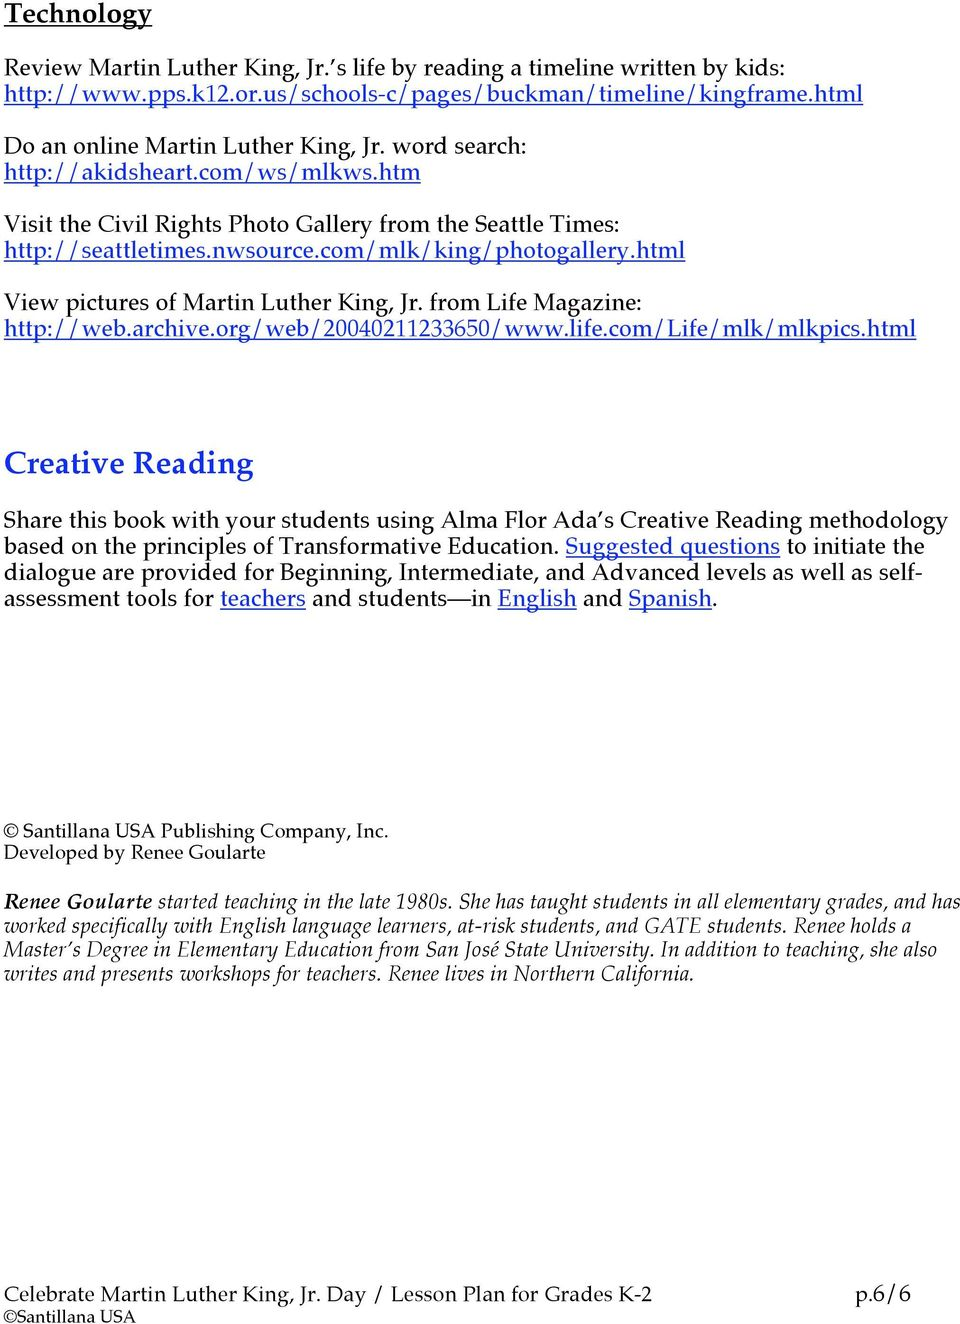 Celebrate martin luther king jr day lesson plan for grades k 2 pdf html view pictures of martin luther king jr from life magazine http ibookread Read Online